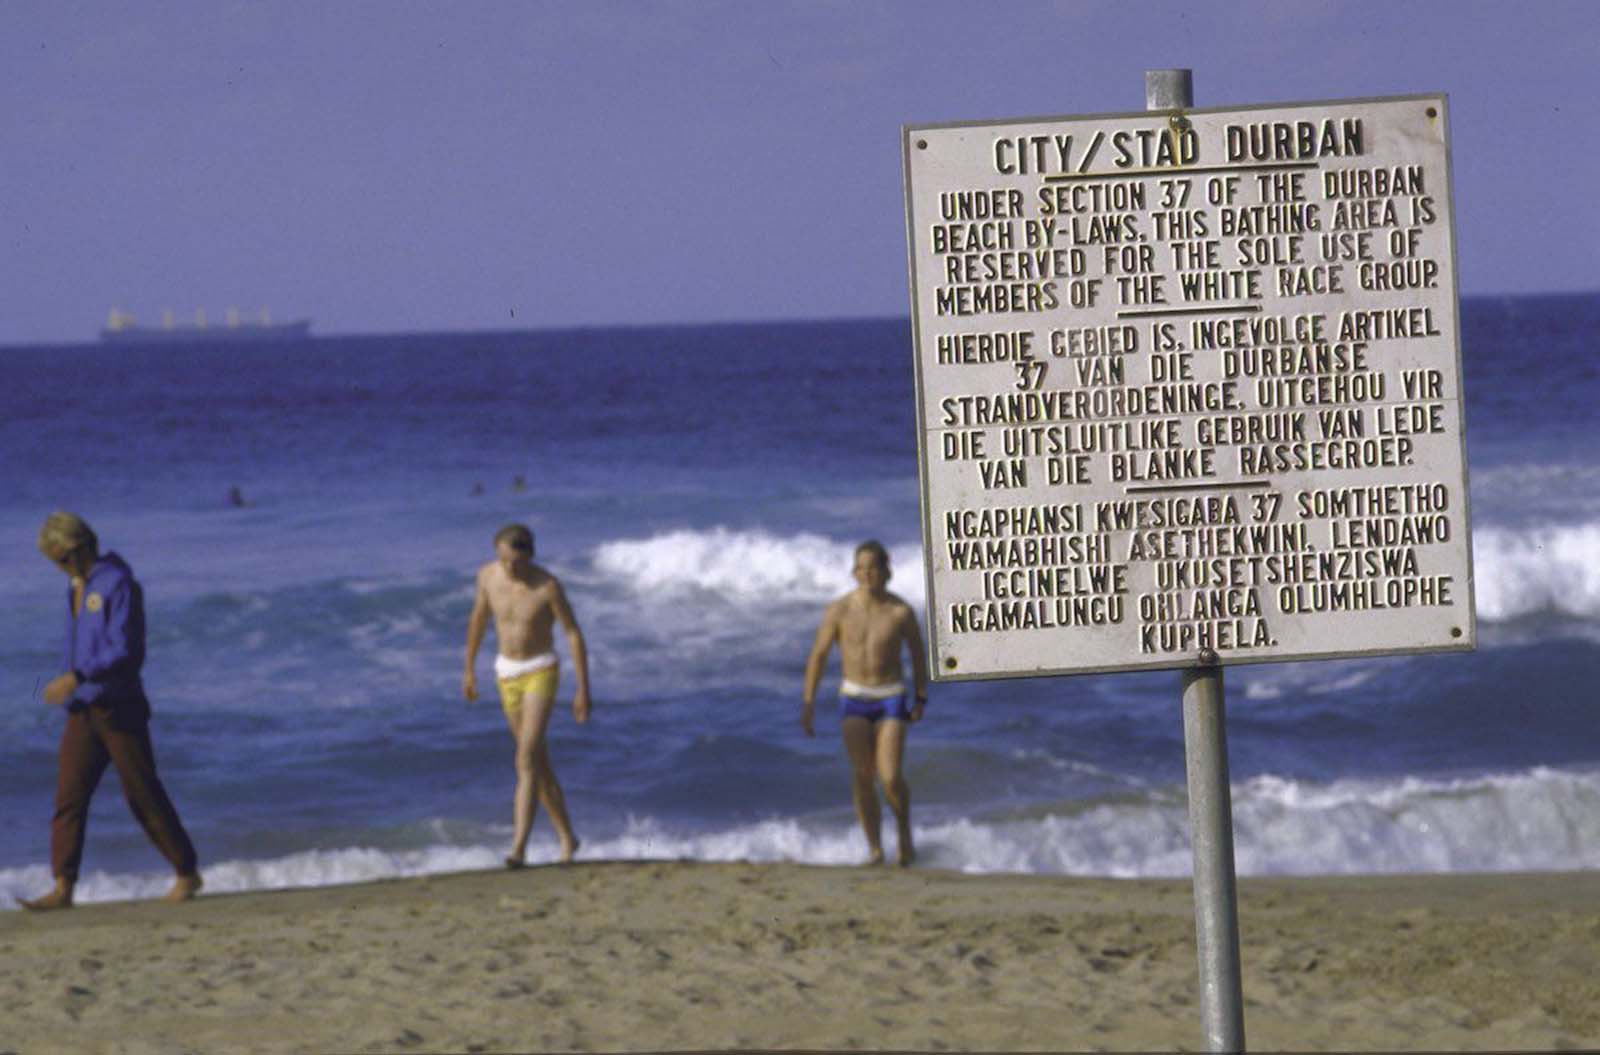 Whites only sign in foreground at restricted beach, with bathers in background. 1986.